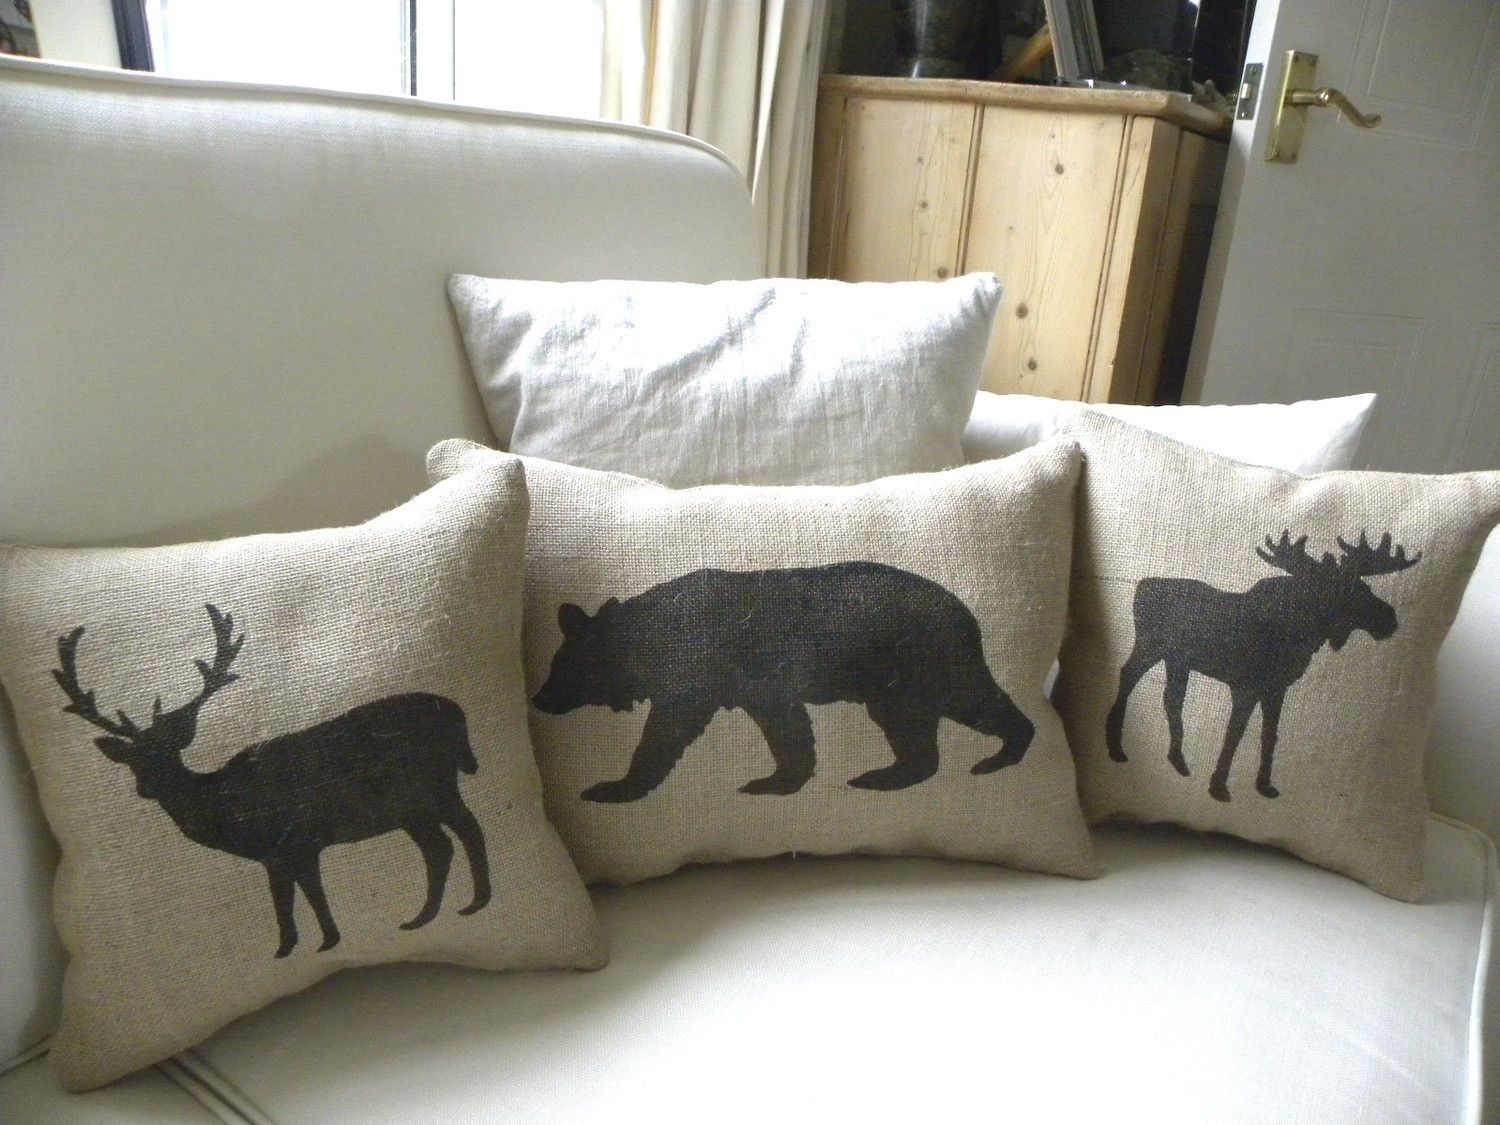 Diy Decorative Christmas Pillows : Burlap deer/moose/bear pillows for Christmas... looks like an easy diy I can make it my dang ...